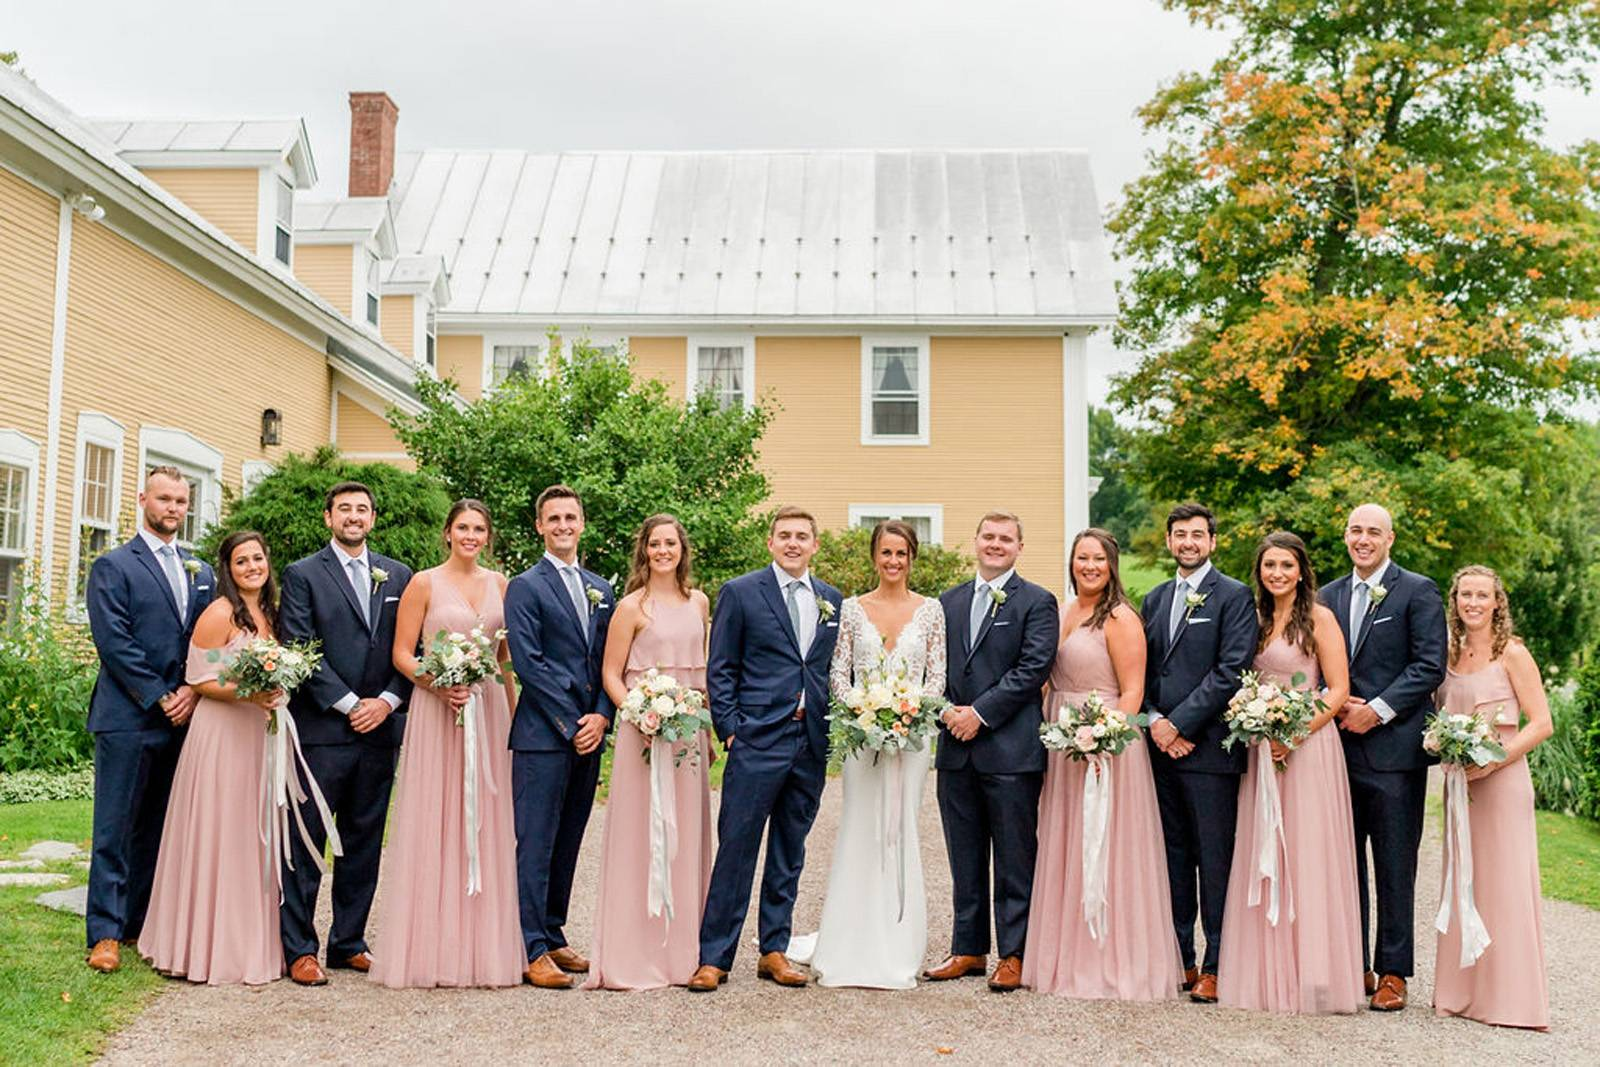 Groomsmen in navy and bridesmaids in blush on wedding day at the Inn at the Round Barn Farm